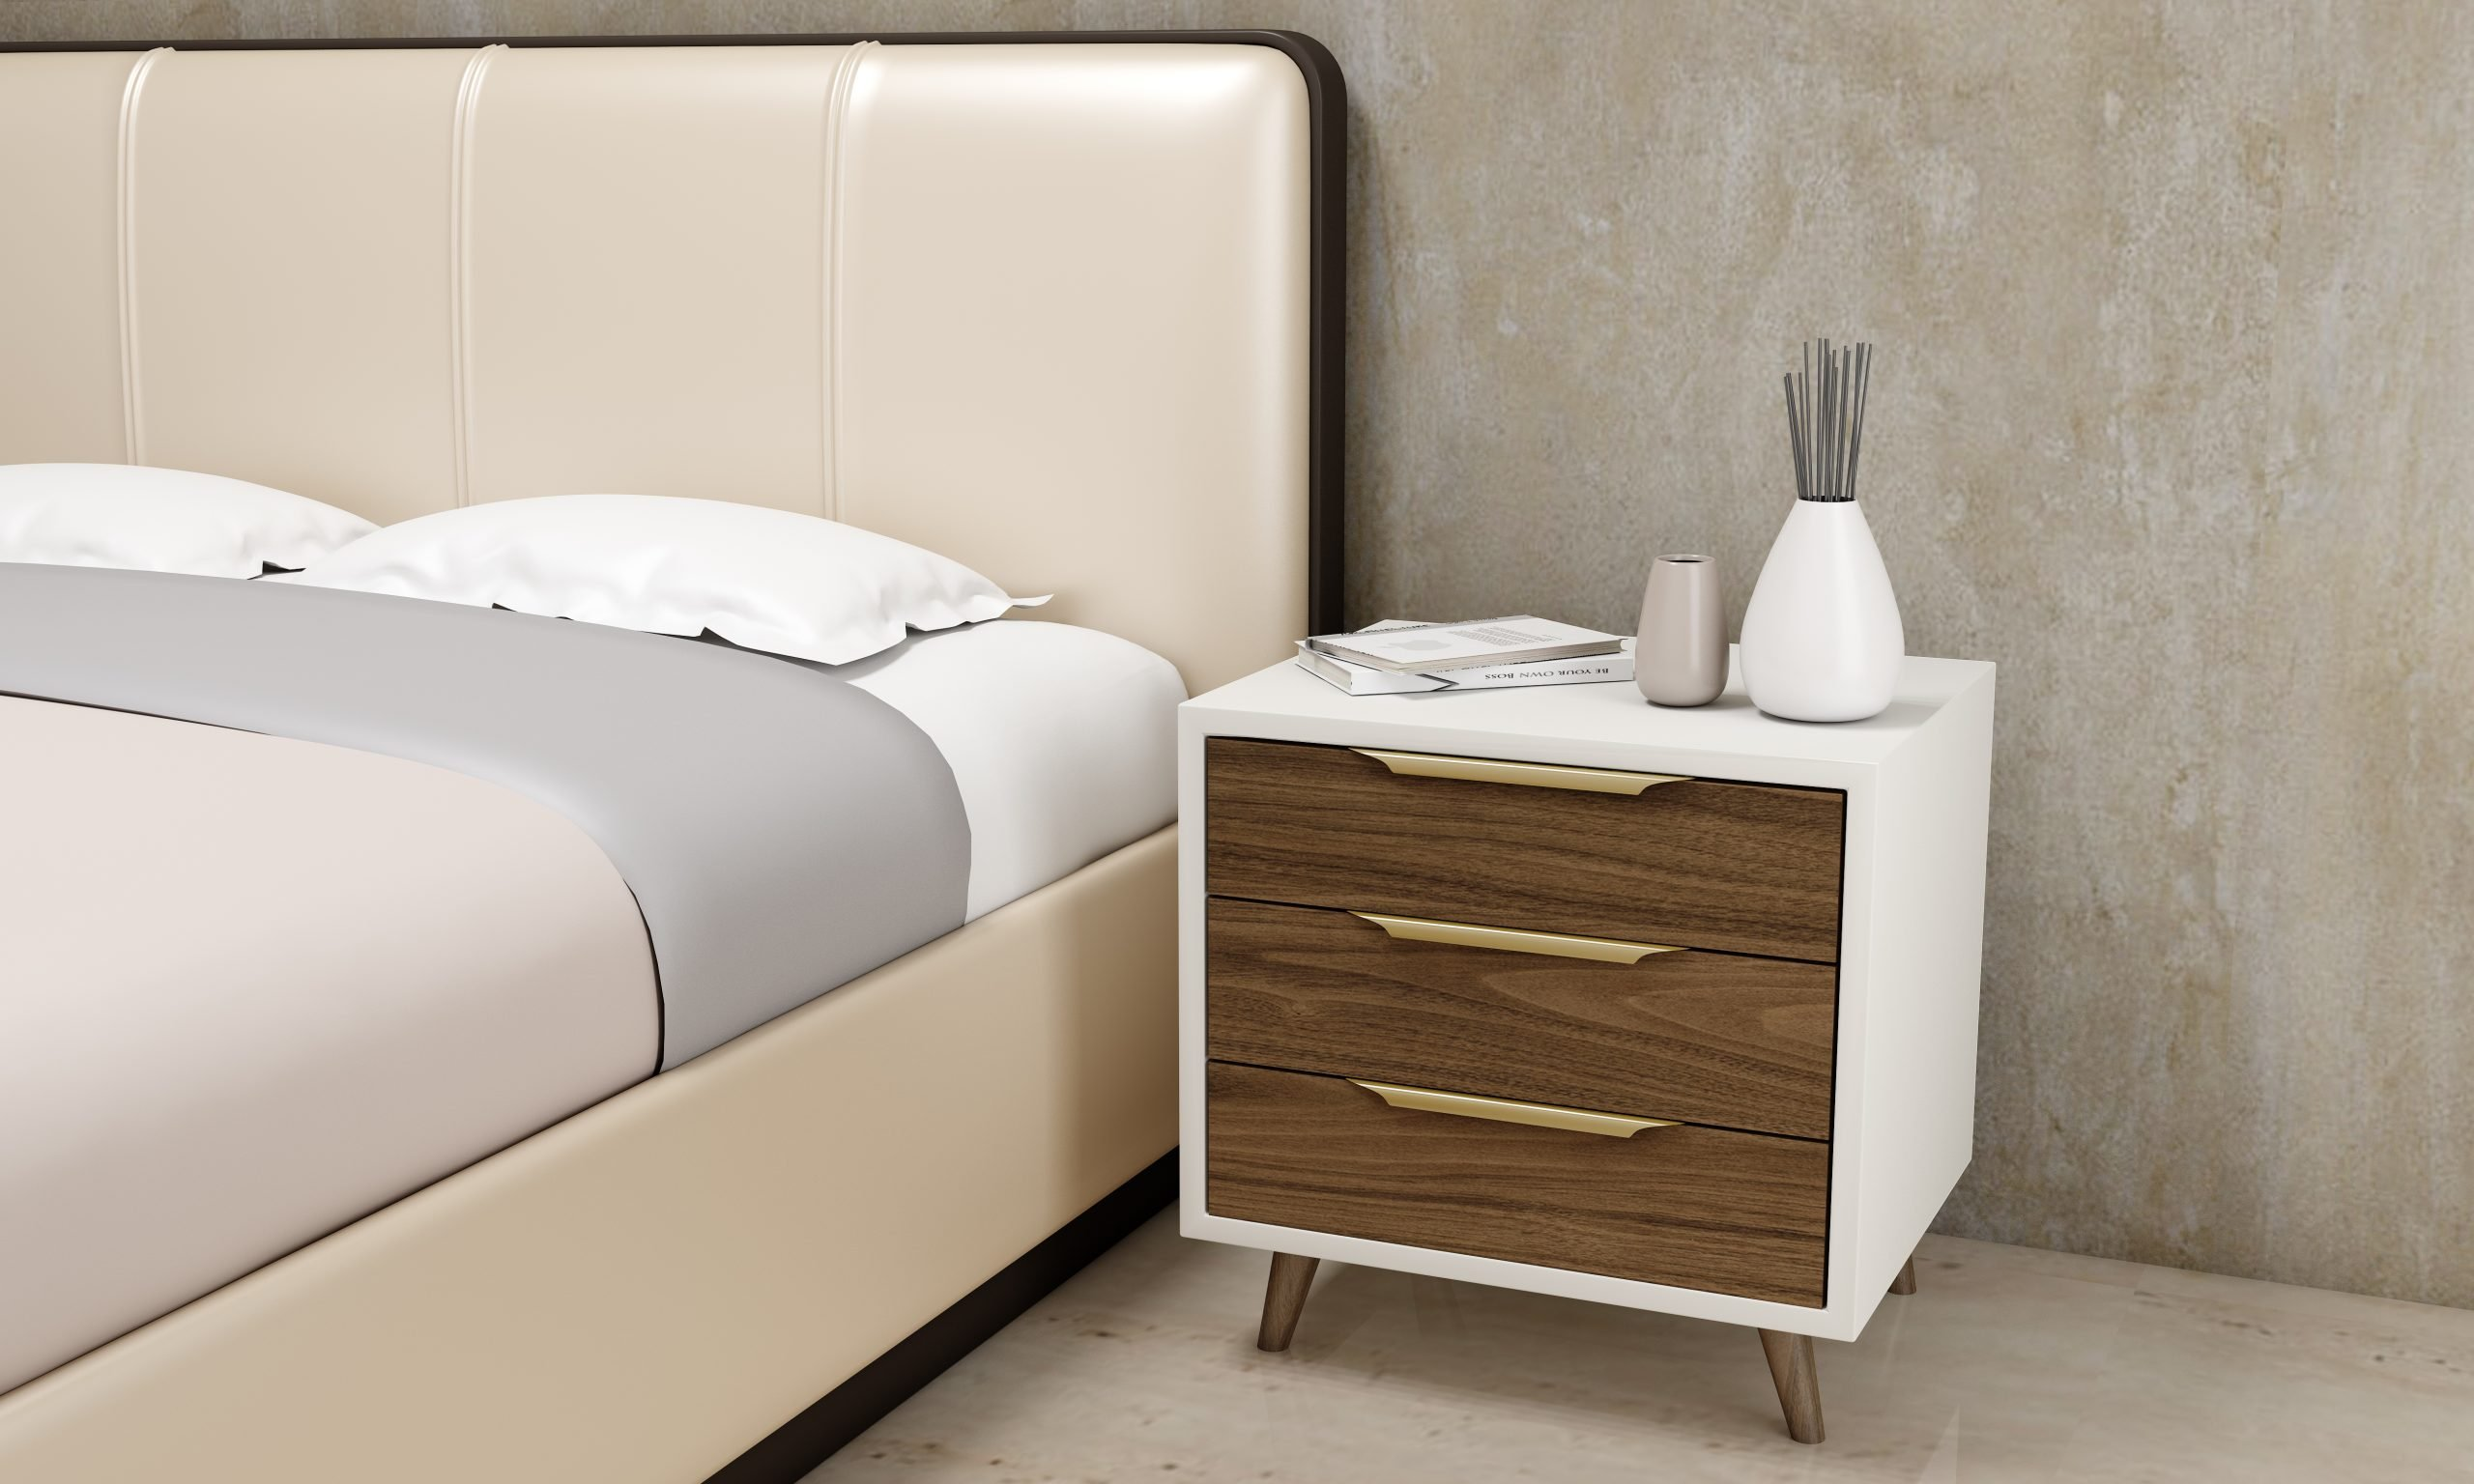 Made to measure bedside cabinets.